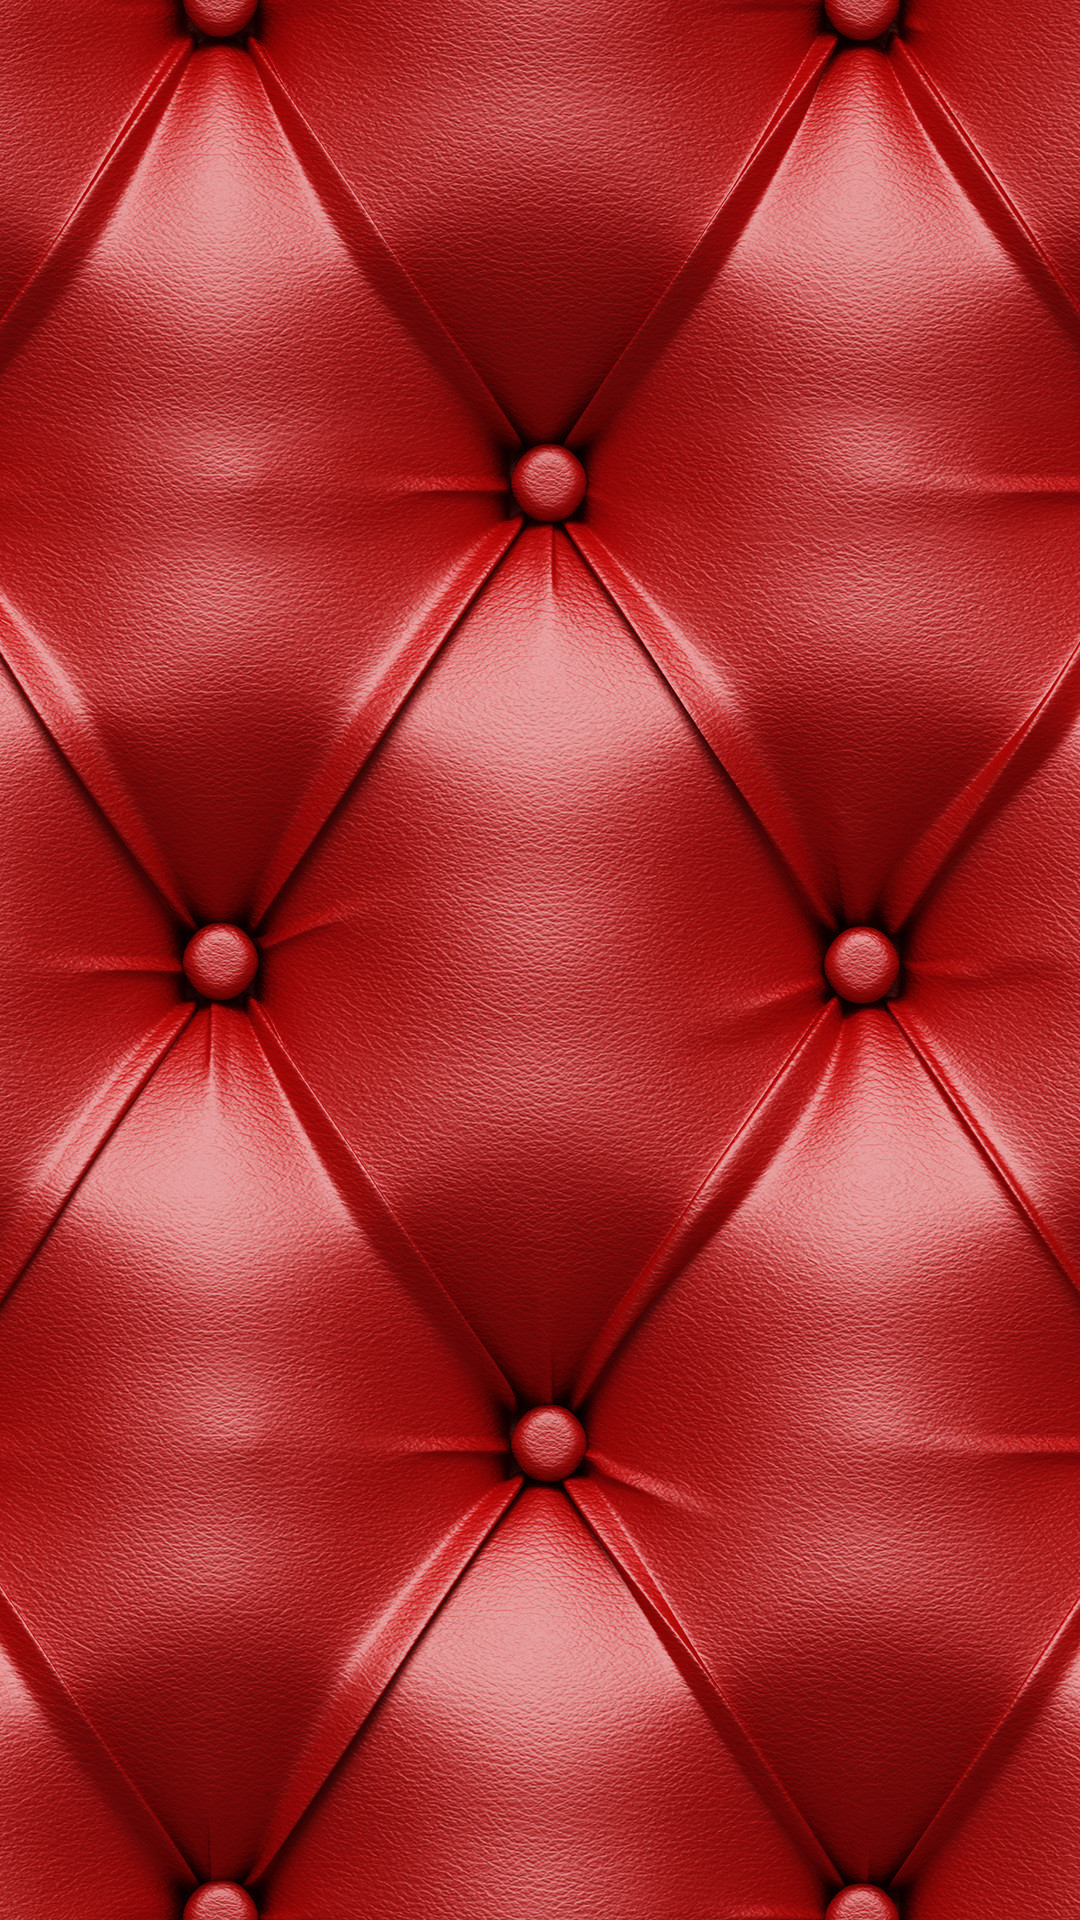 Red Leather Wallpaper 55 Images